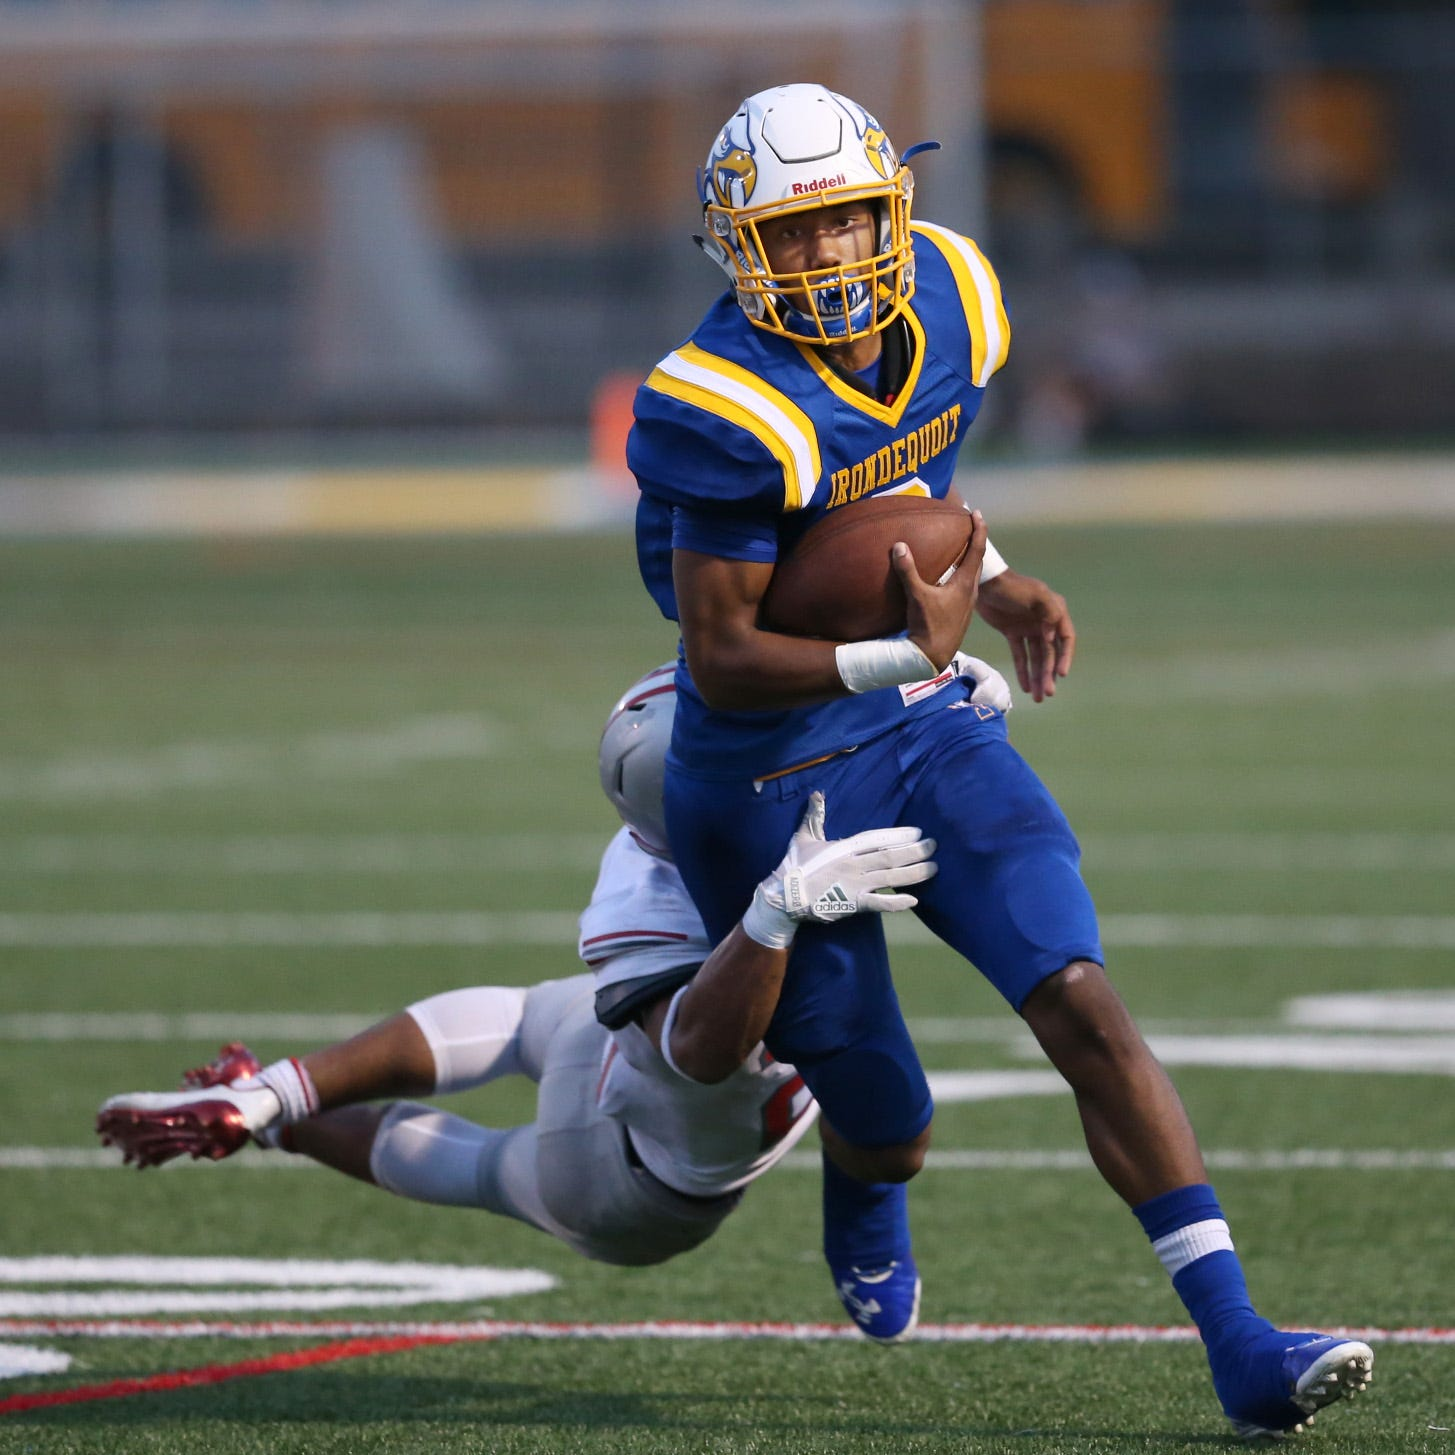 Irondequoit quarterback Freddy June Jr. is tackled from behind by Canandaigua's AJ Clifford as he scrambles downfield for yardage during their game Saturday, Sept. 16, 2017.